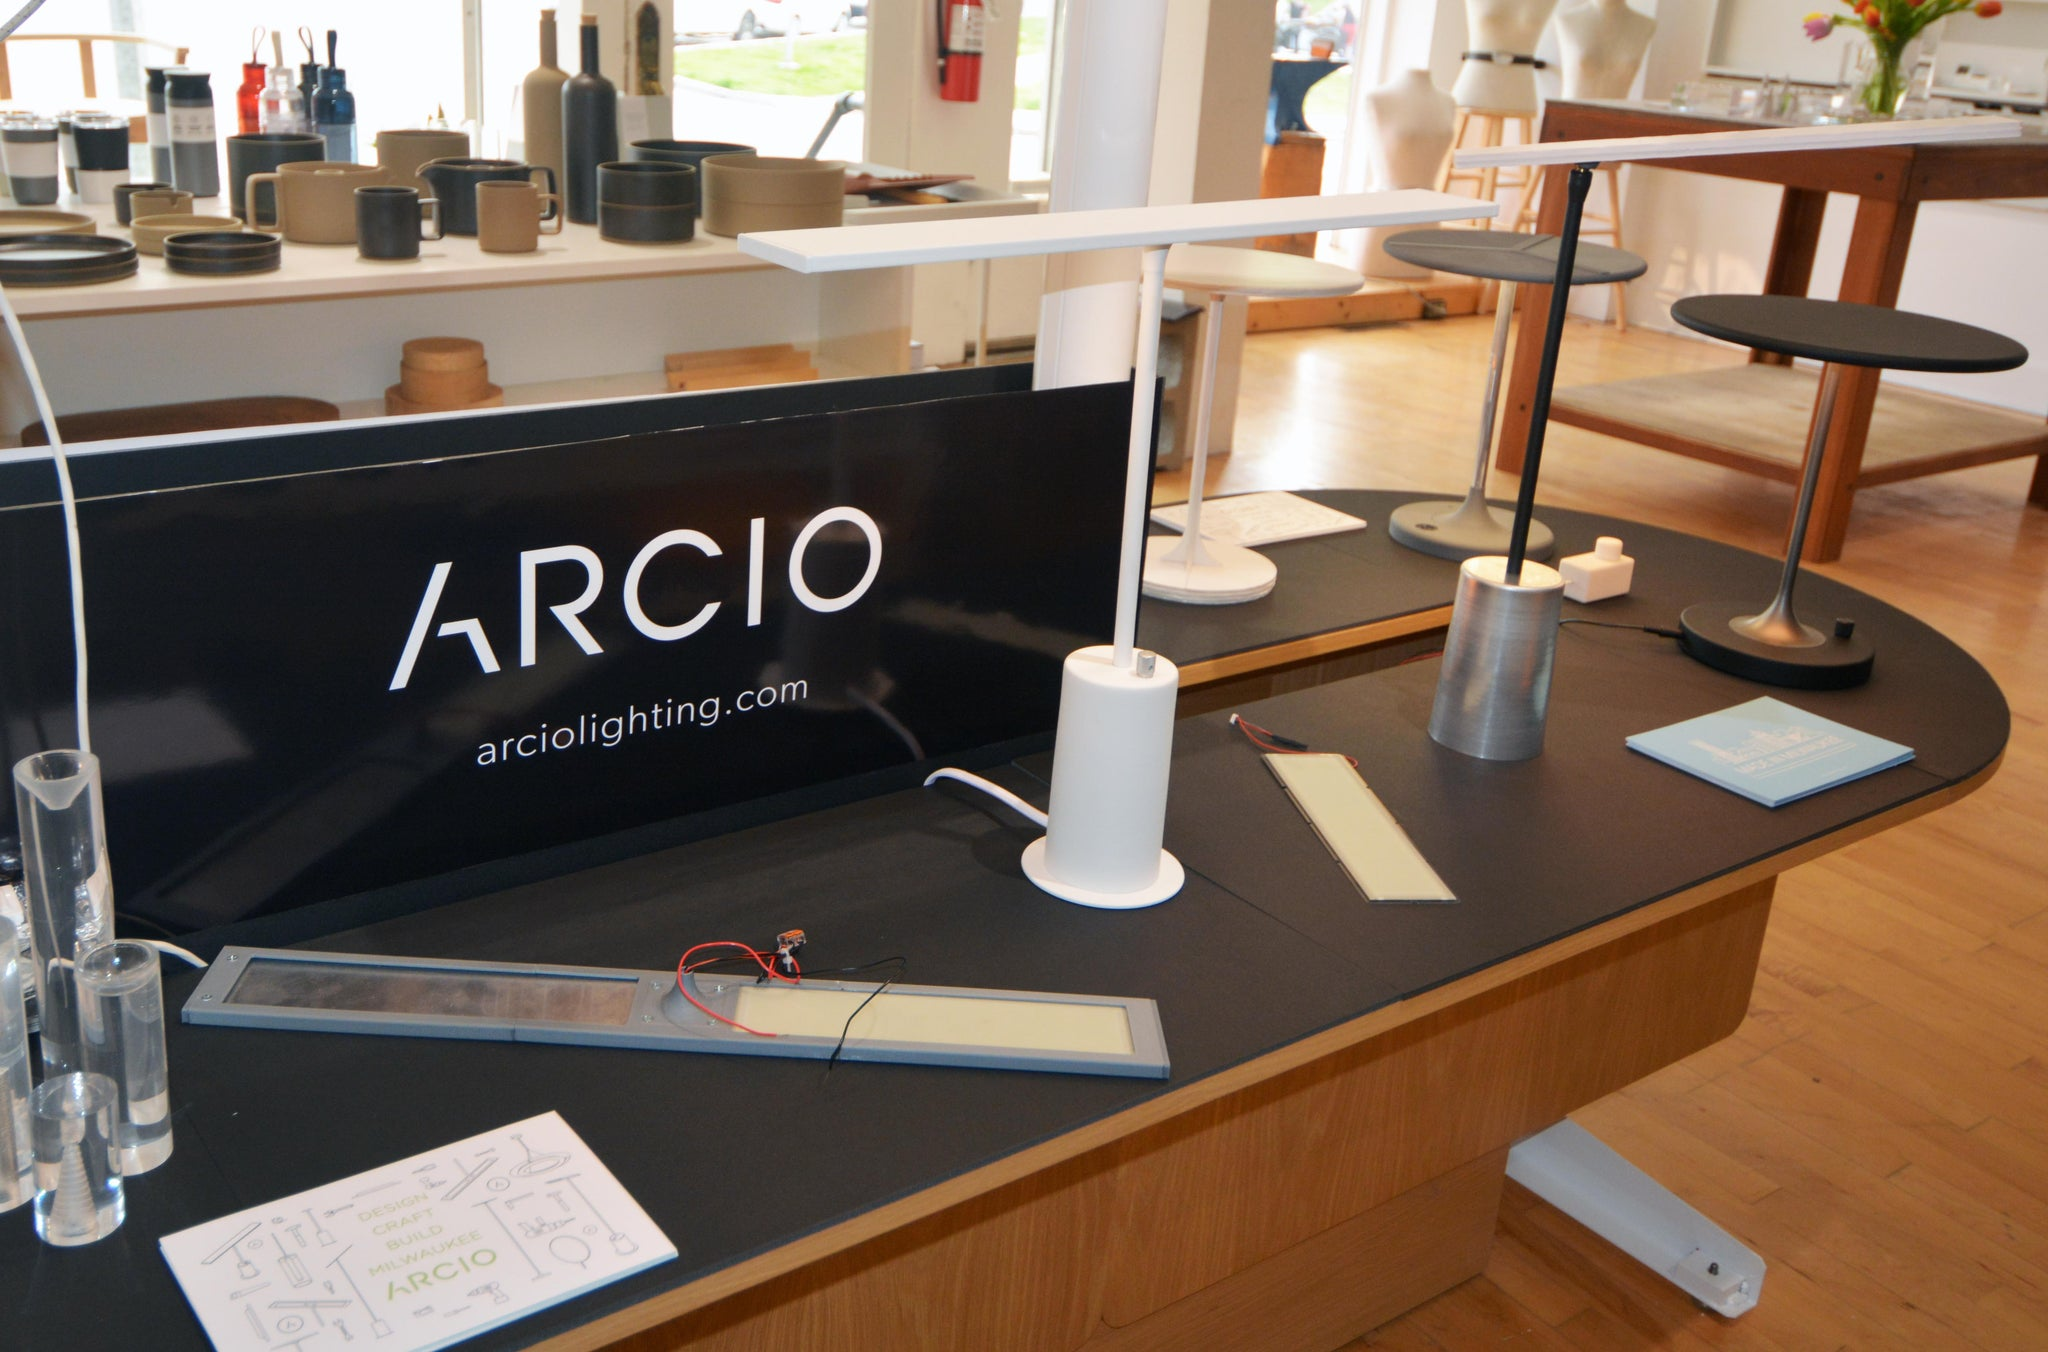 Arcio lighting product display at commonplace shop